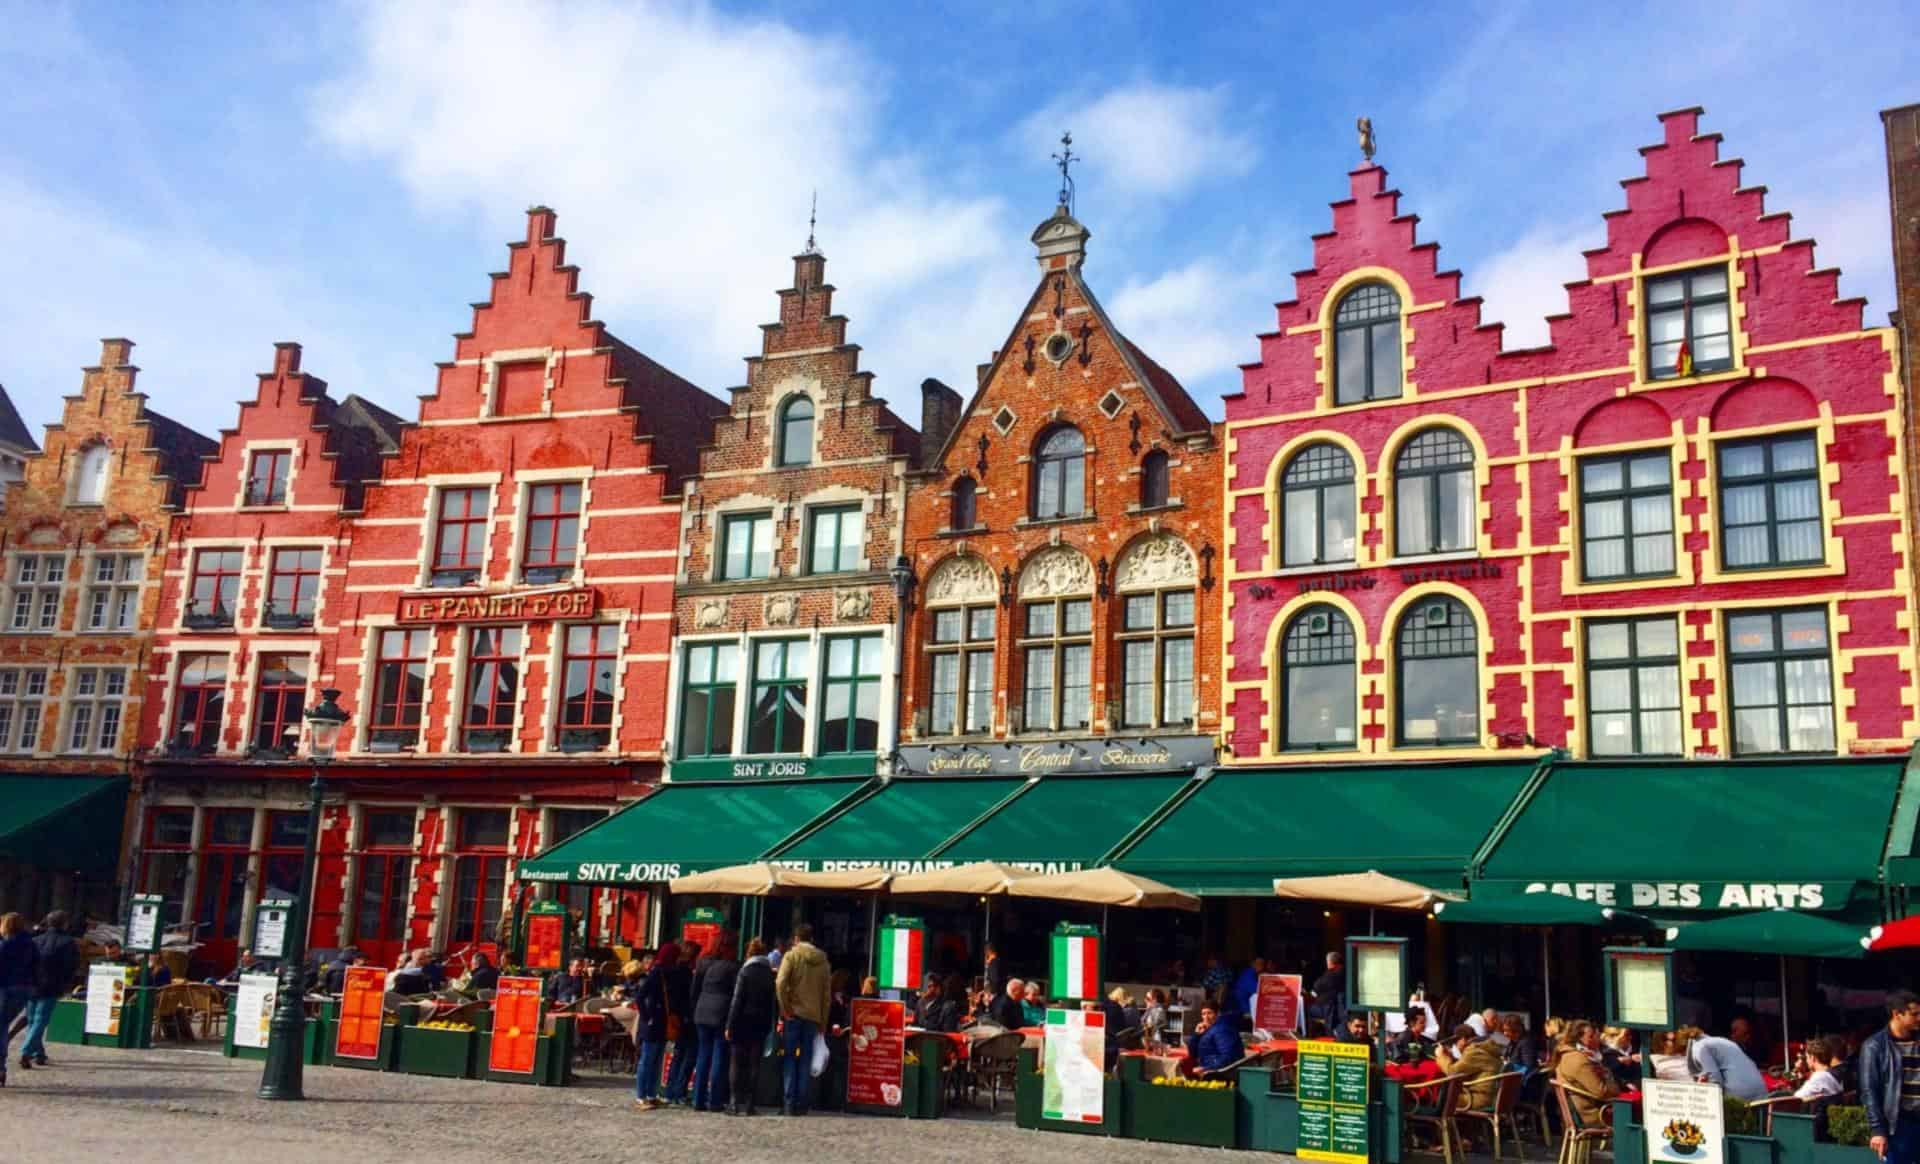 10 Things To Do In Bruges, Belgium!